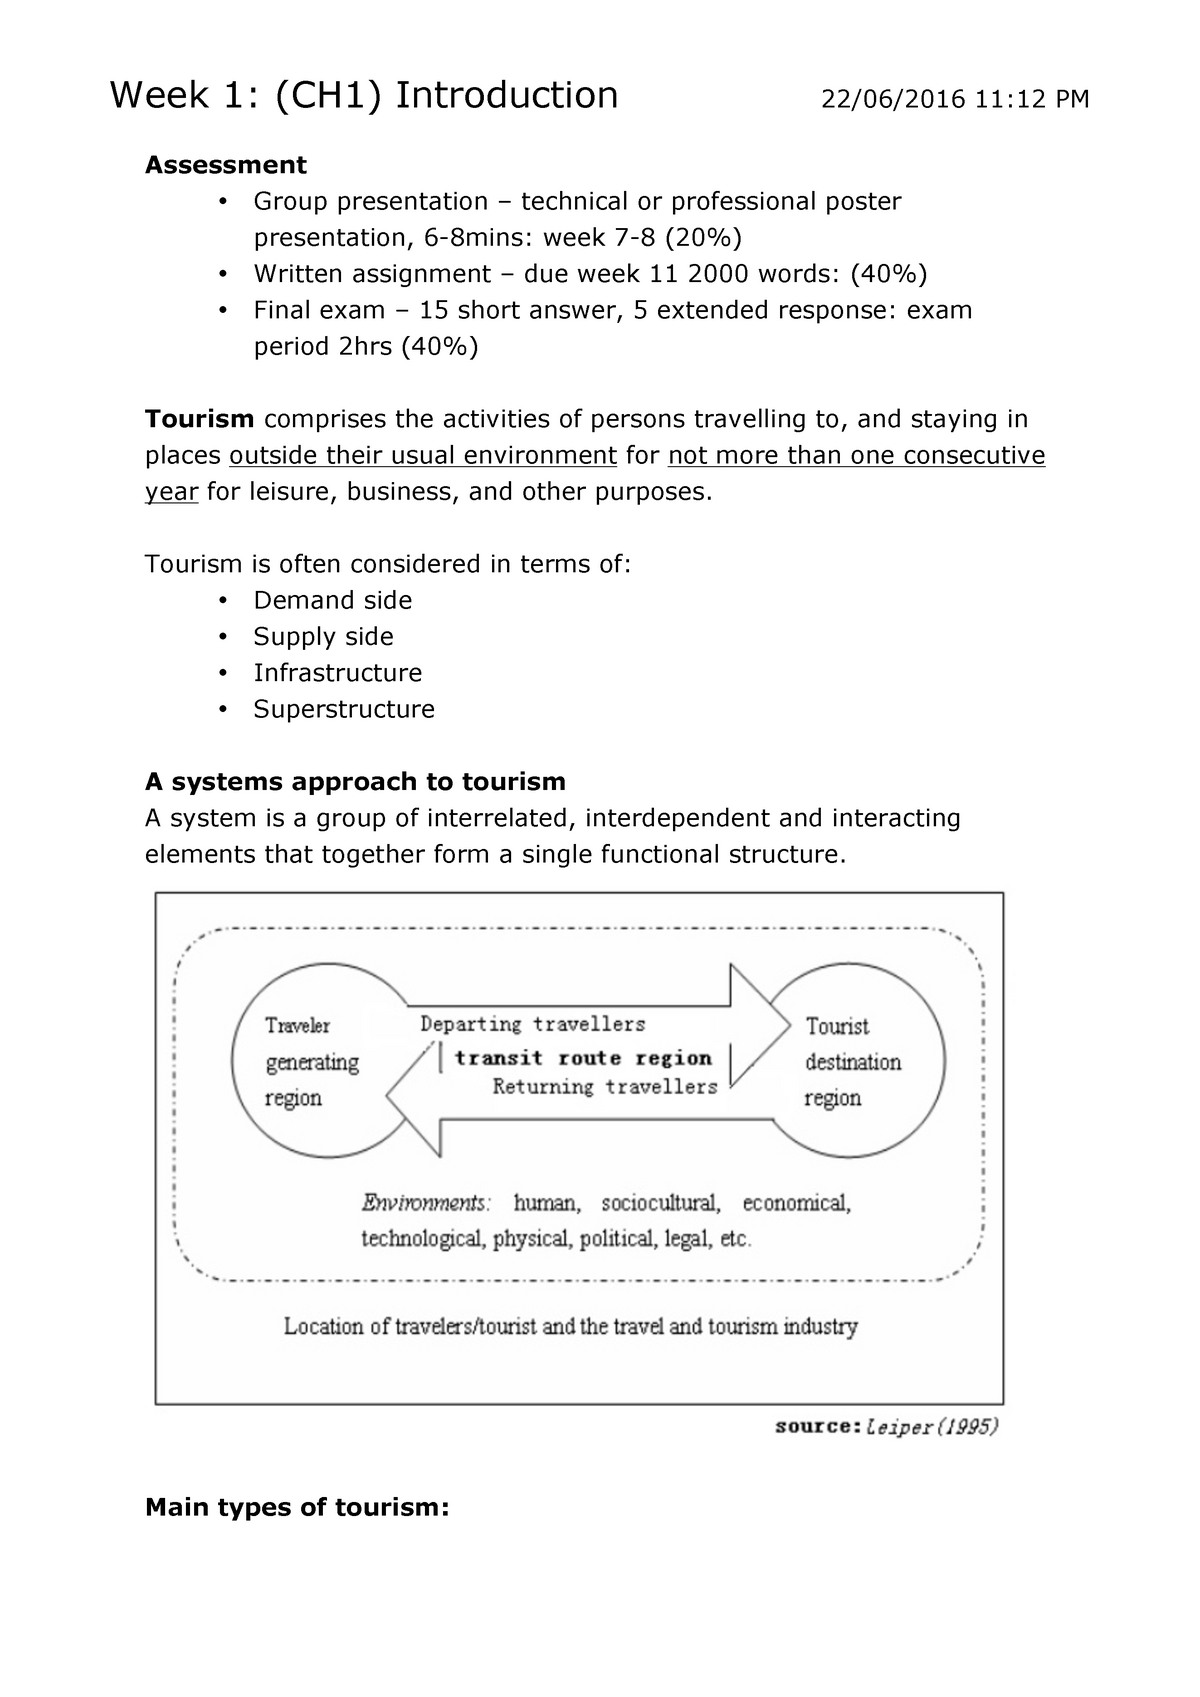 Sustainable Tourism - Lecture notes, lectures 1 - 12